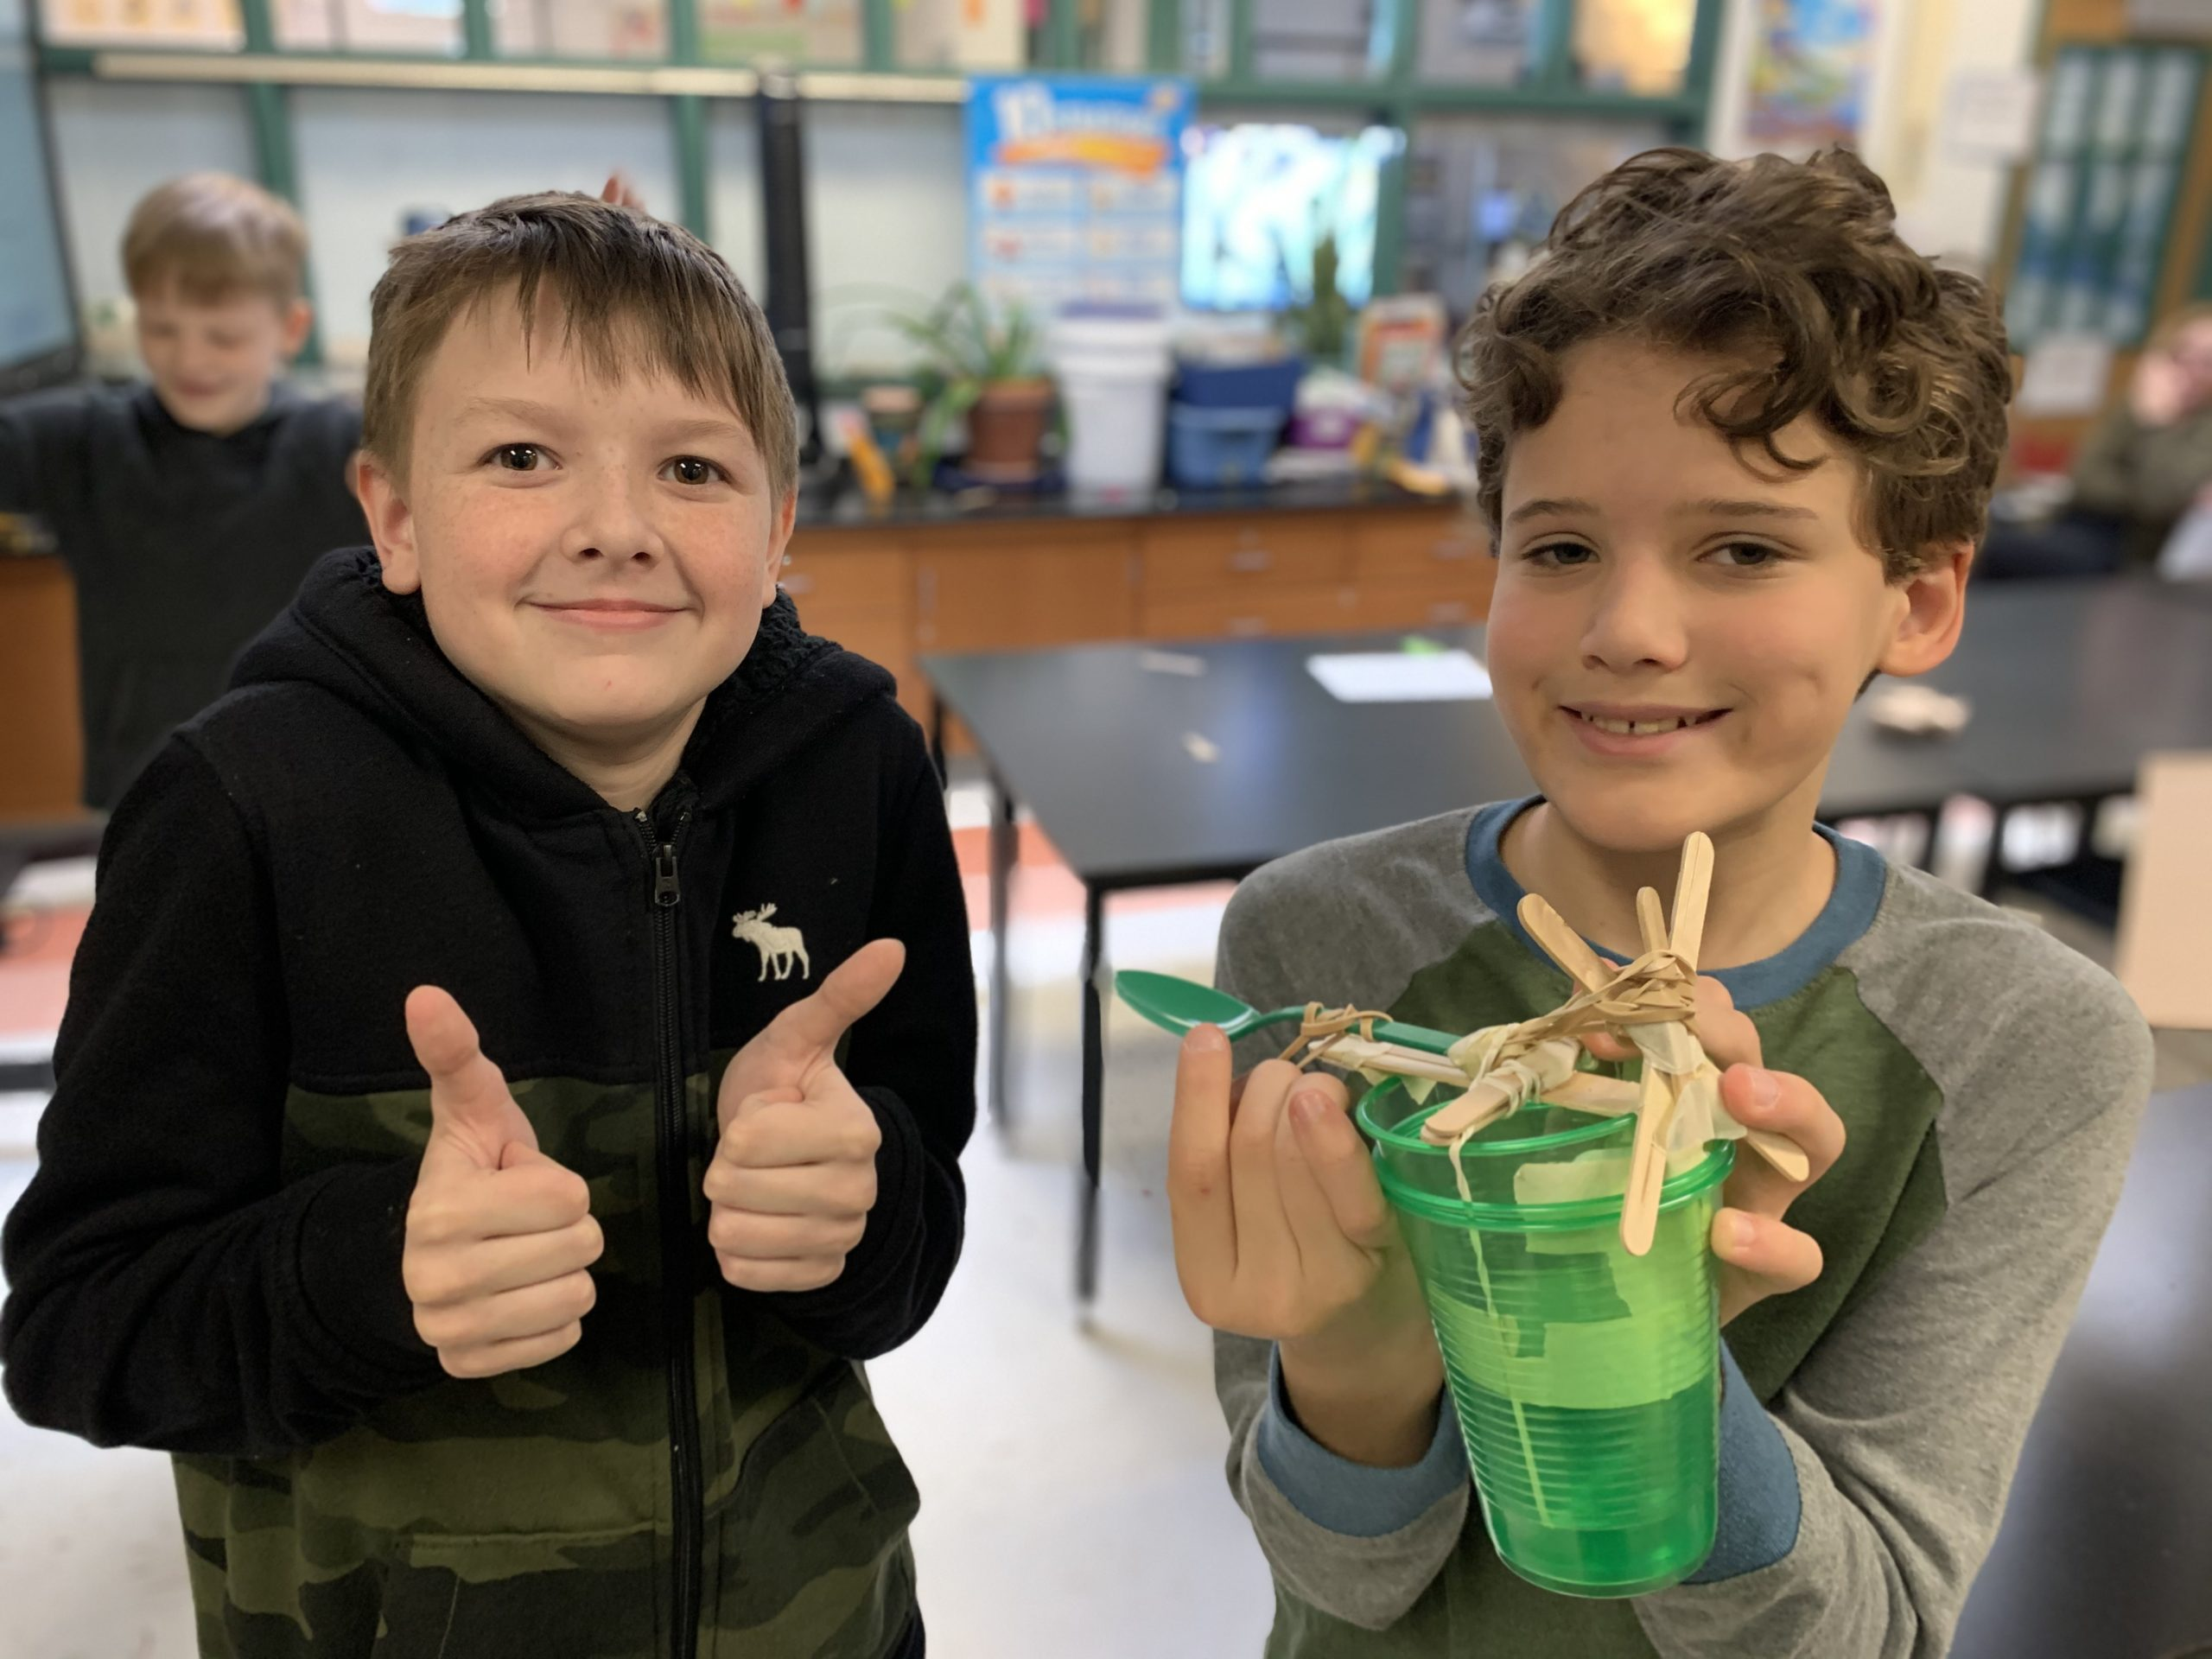 East Quogue Elementary School sixth graders are exploring how catapults changed warfare in ancient Greece by engineering their own catapults with a limited set of supplies.  Ari Firestein and Aidan Judd, right, with their design.